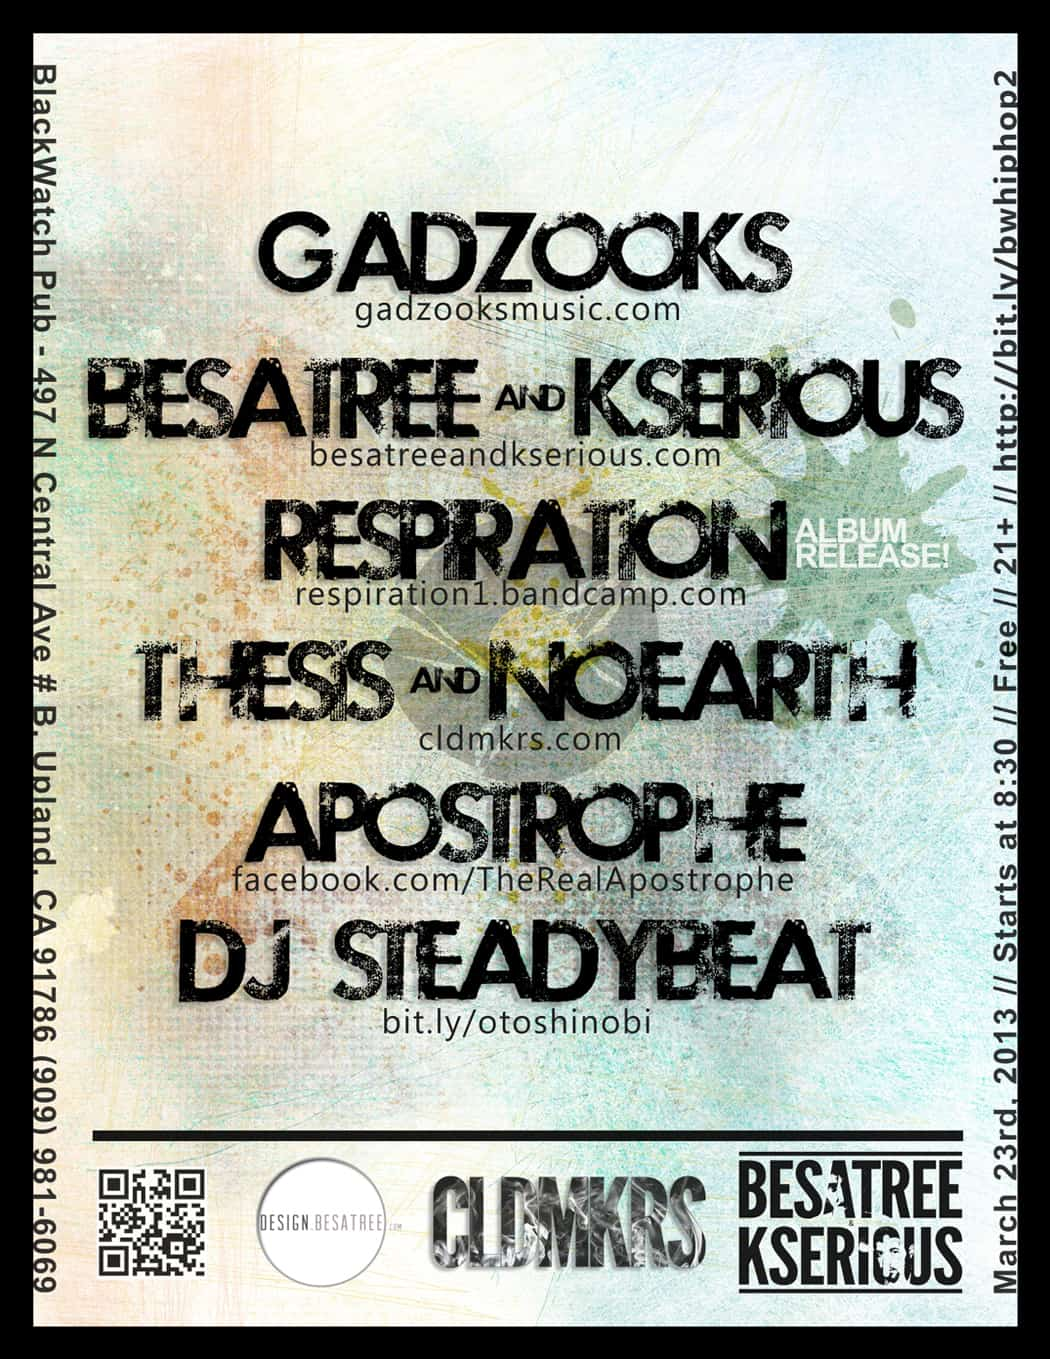 gadzooks - flyer design